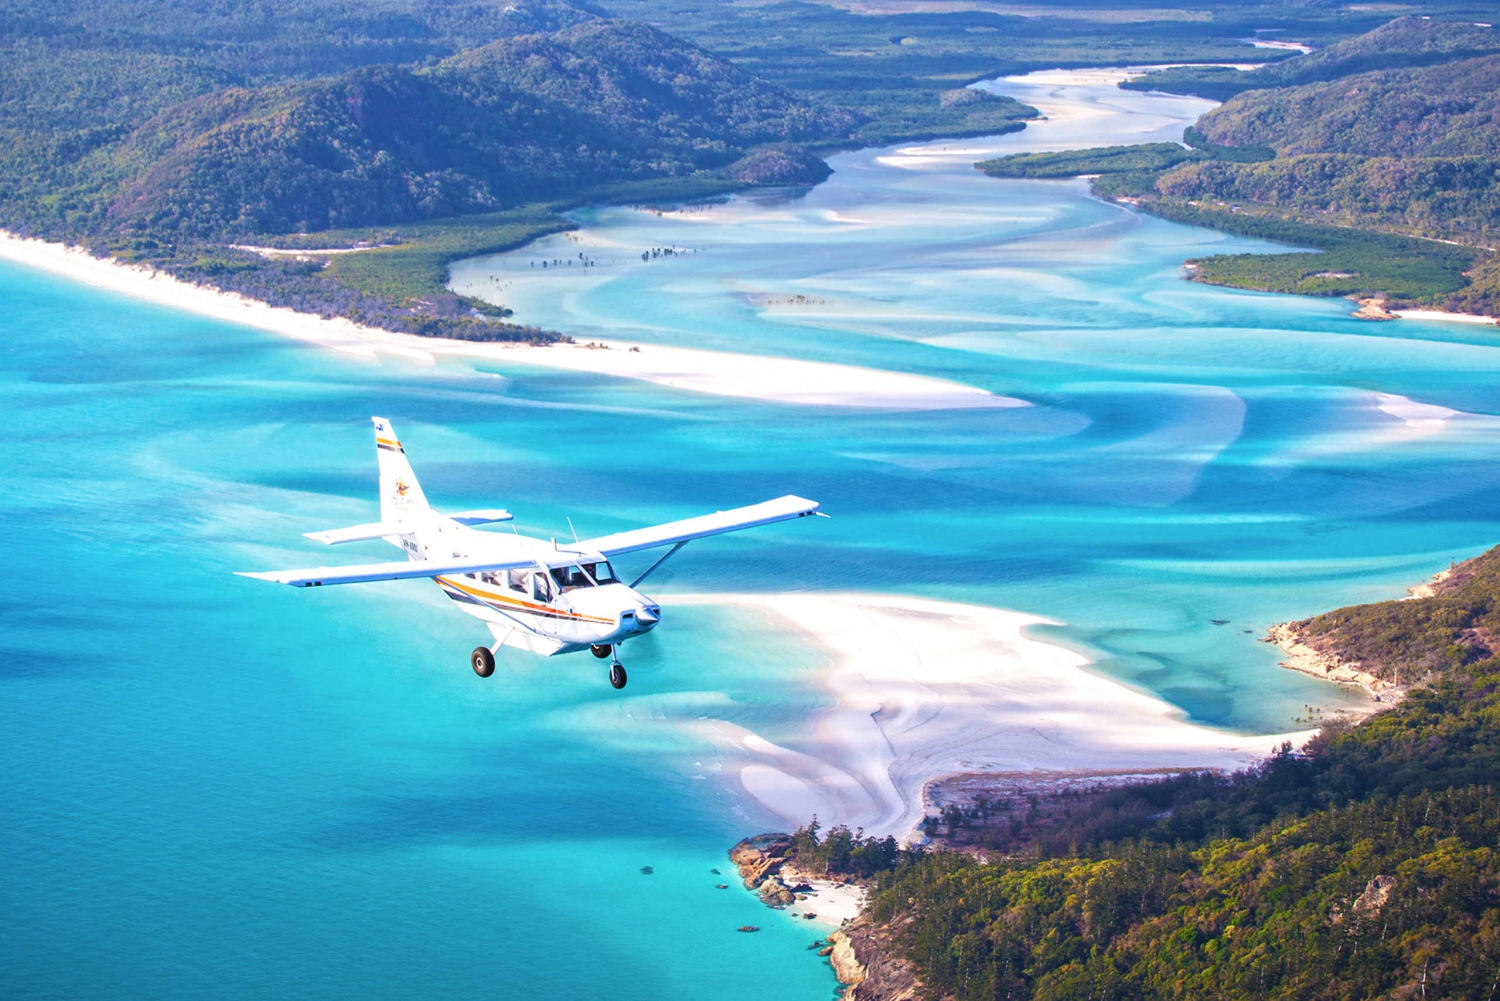 Whitsunday Islands High-Speed Cruise and Scenic Plane Flight